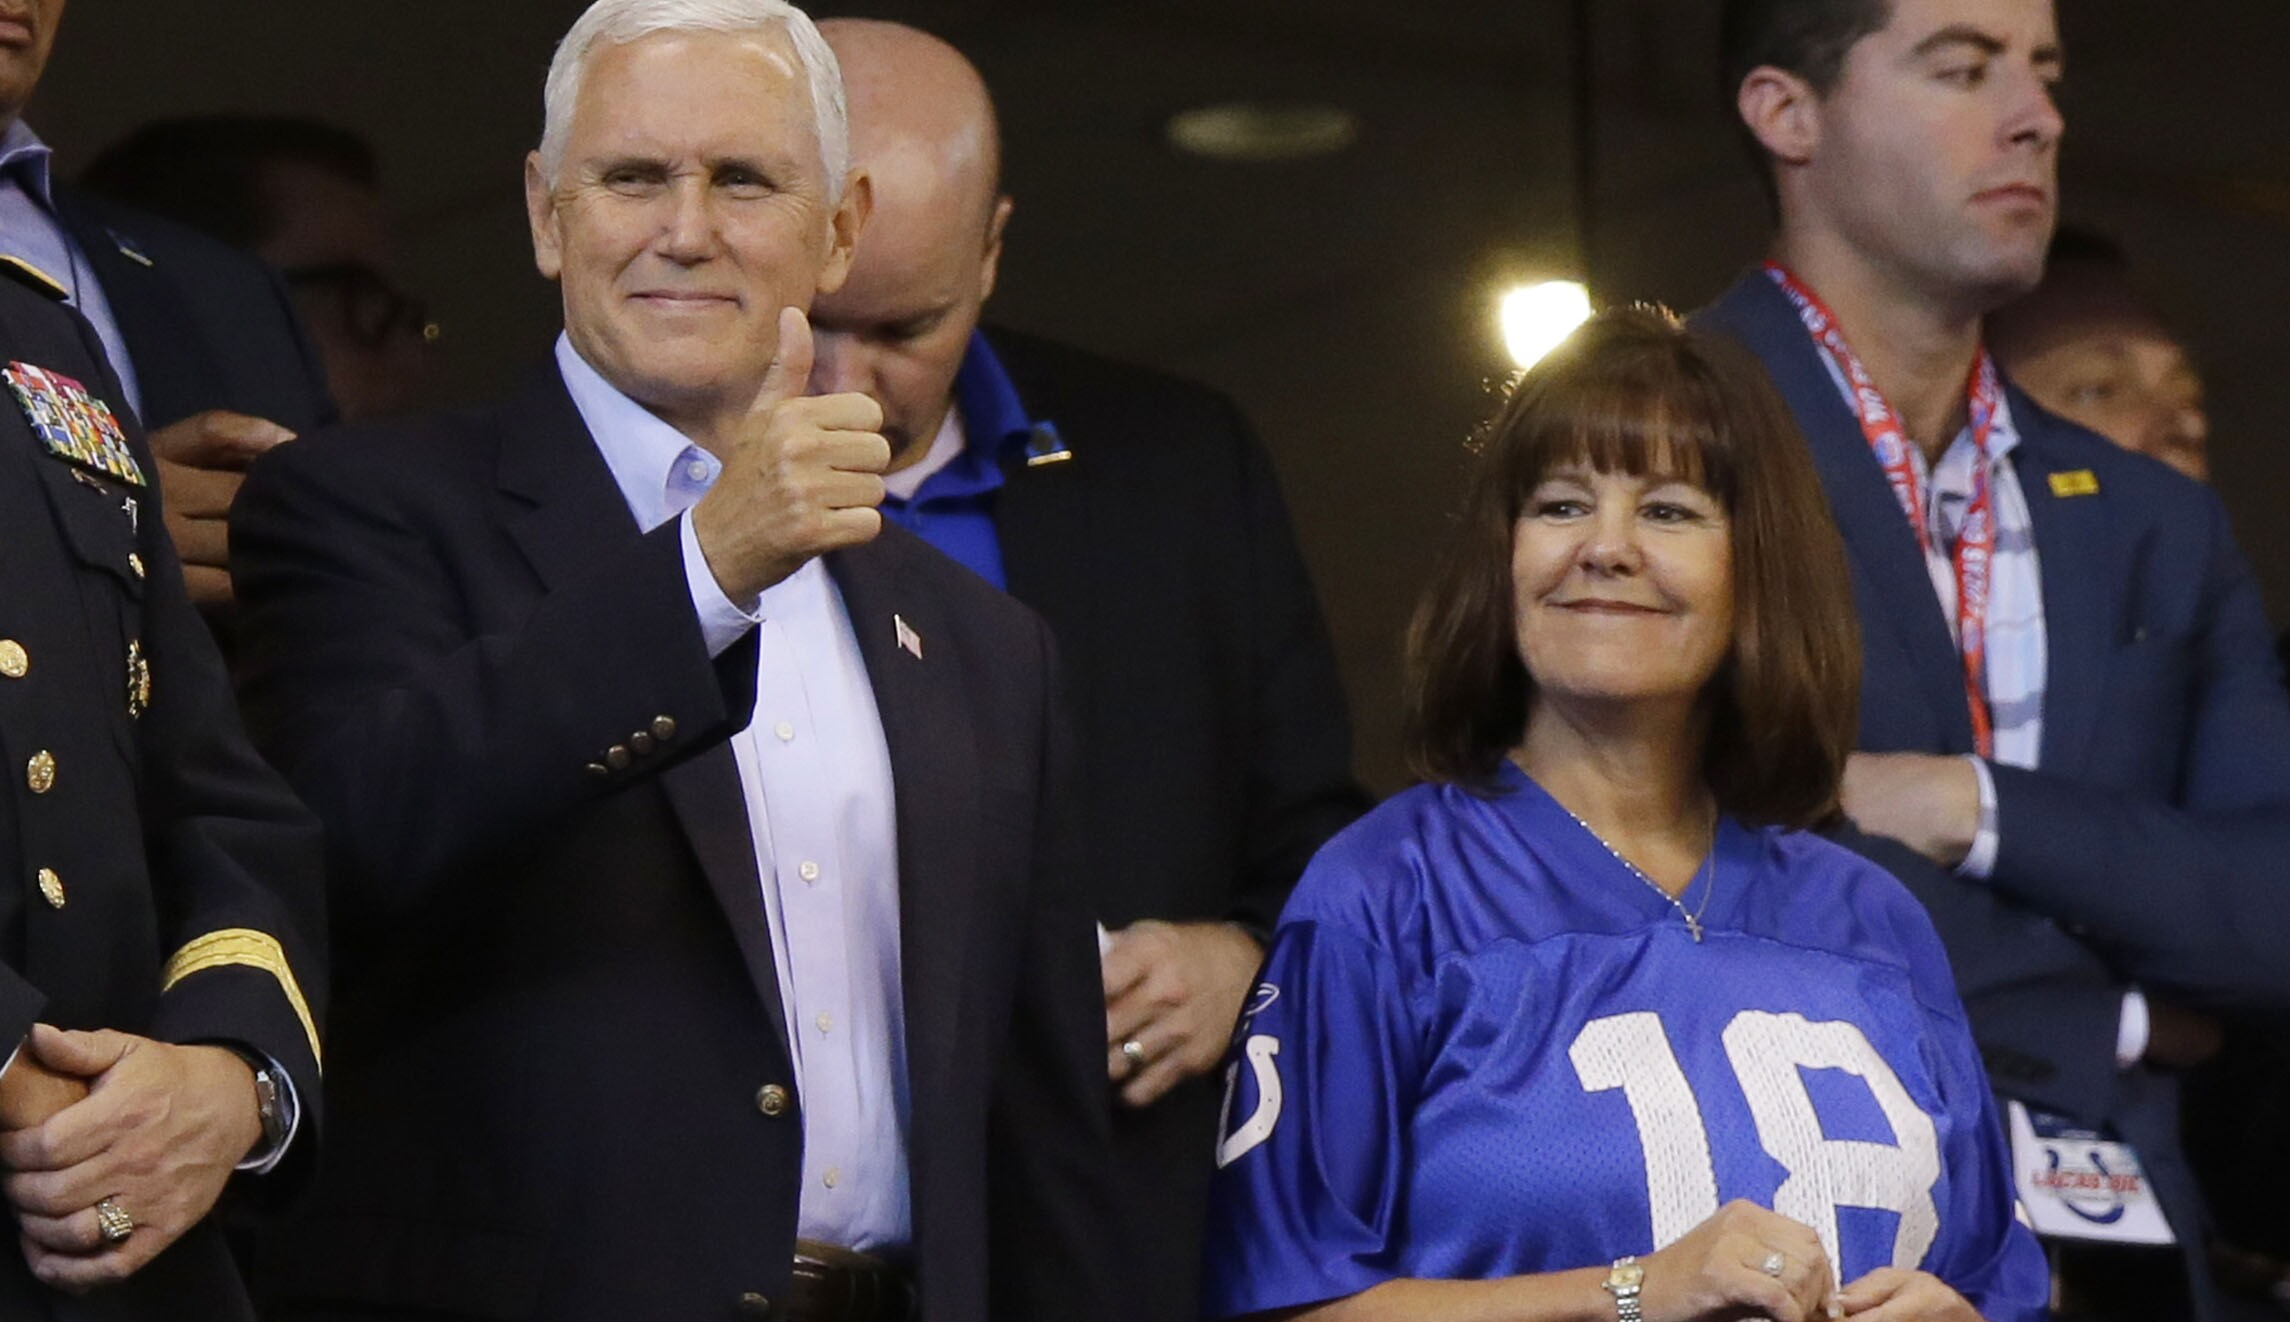 What is the weird fascination you all have on Pence's rule ...